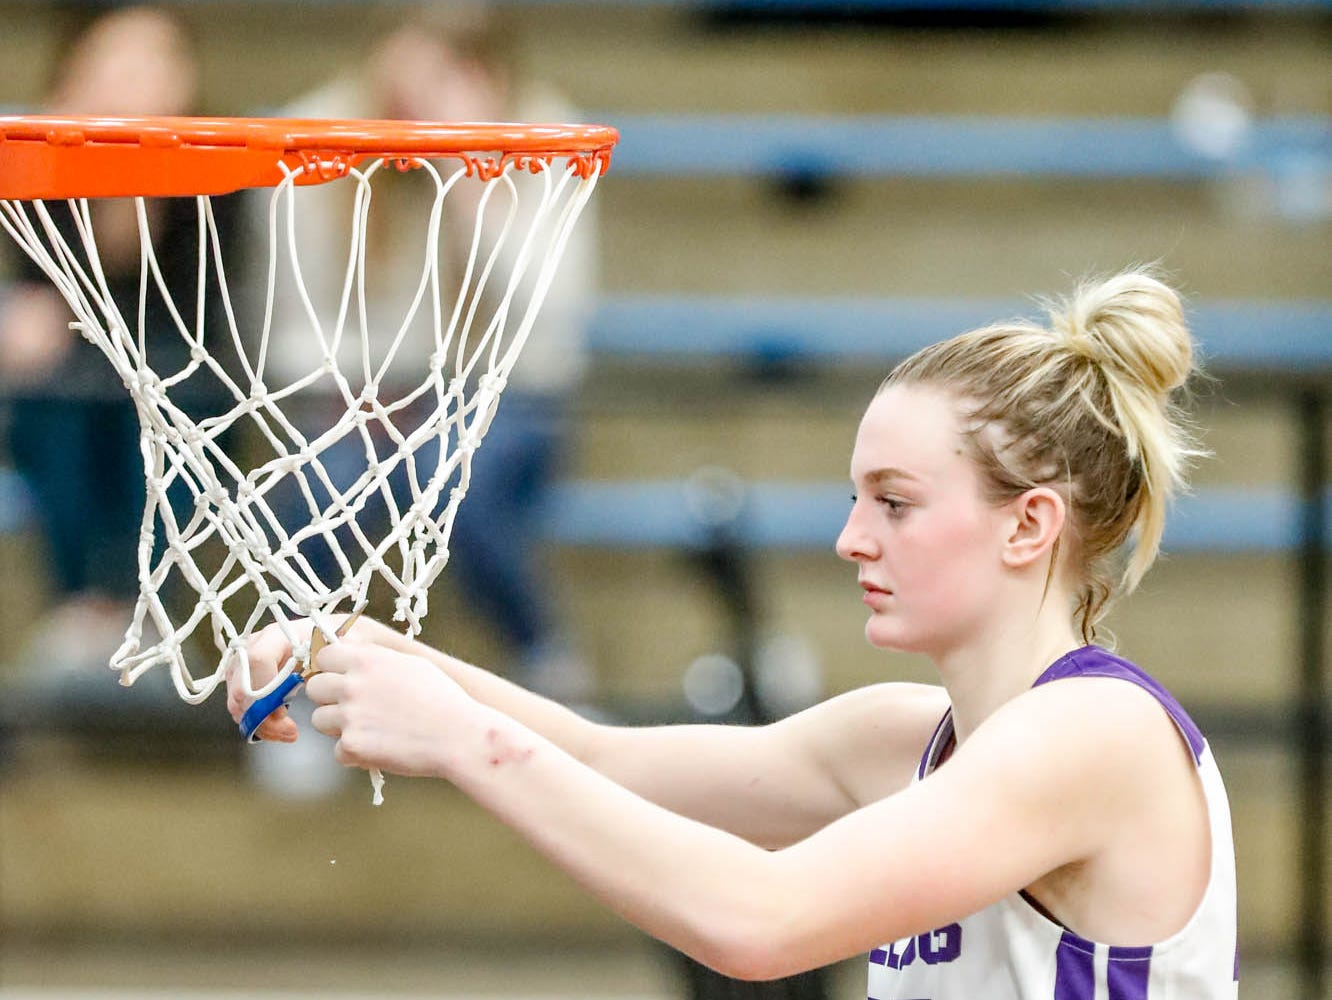 Brownsburg High School's forward Mackenzie Stien (44), cuts pieces from the net after winning the 2019 Hendricks County Basketball Tournament game between the Avon High School girls varsity basketball team and Brownsburg High School, held at Cascade High School on Saturday, Jan. 5, 2019. The final score was 69-44.